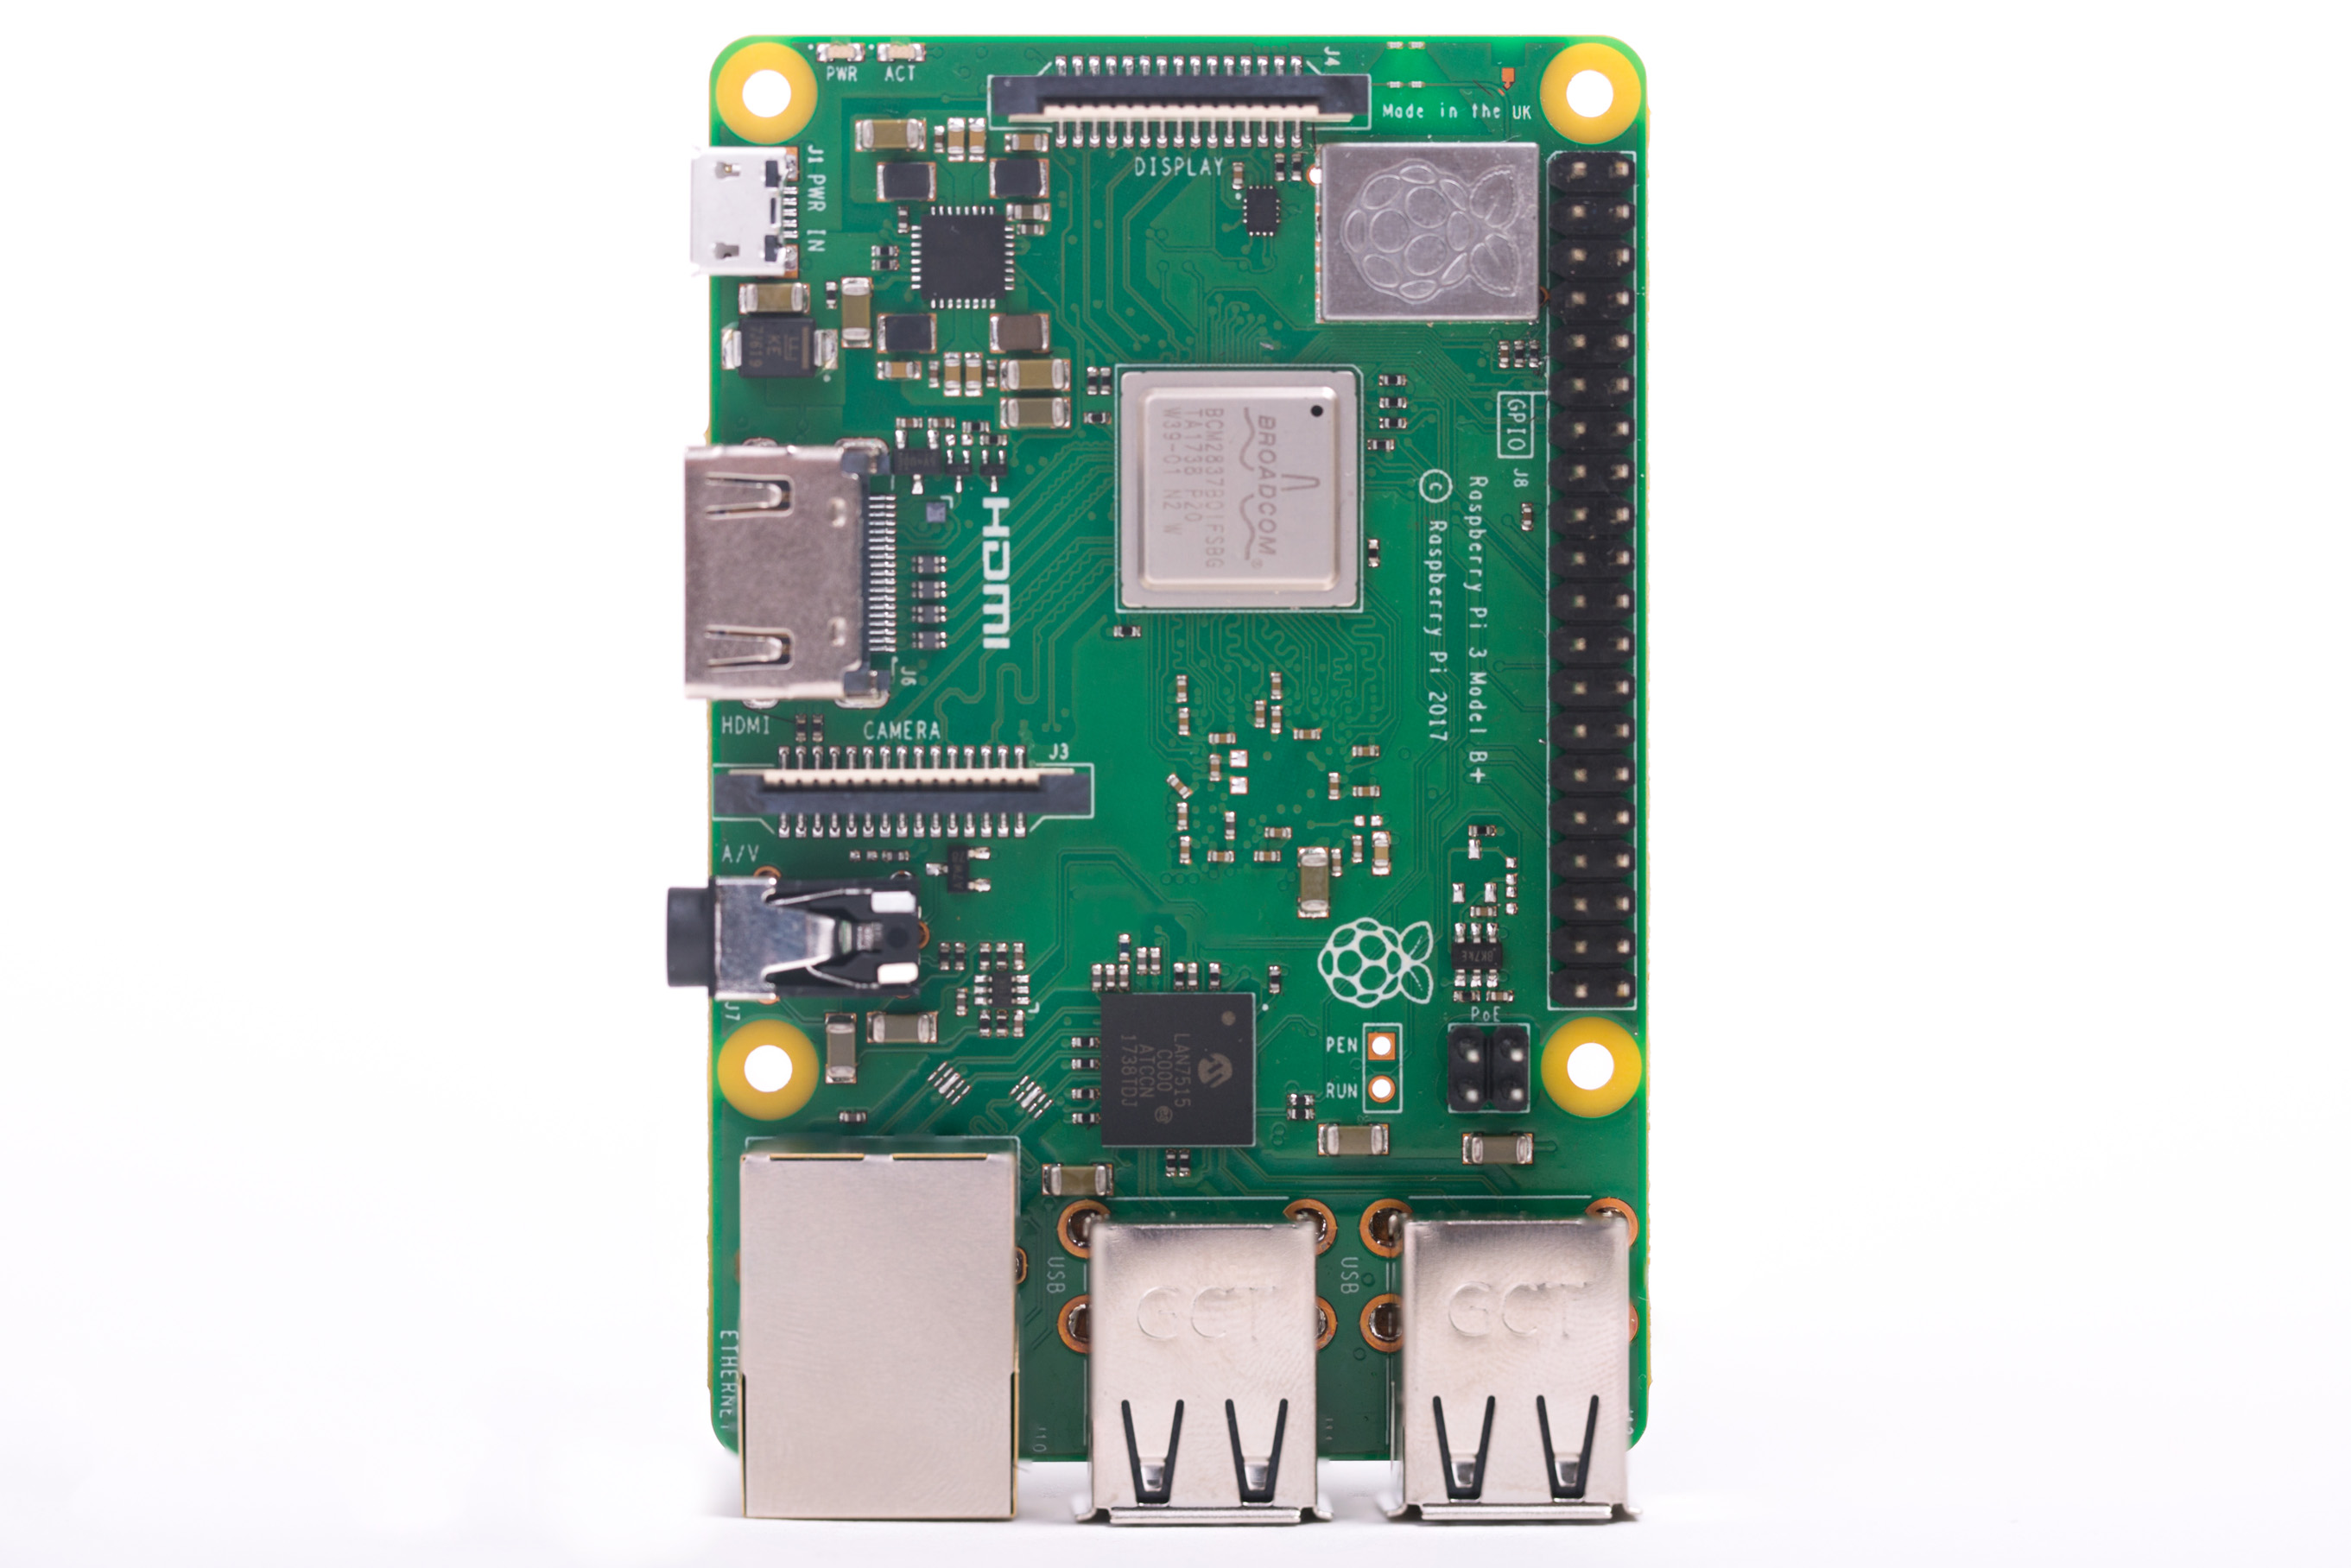 Raspberry Pi Model B+ arrives just in time for Pi Day